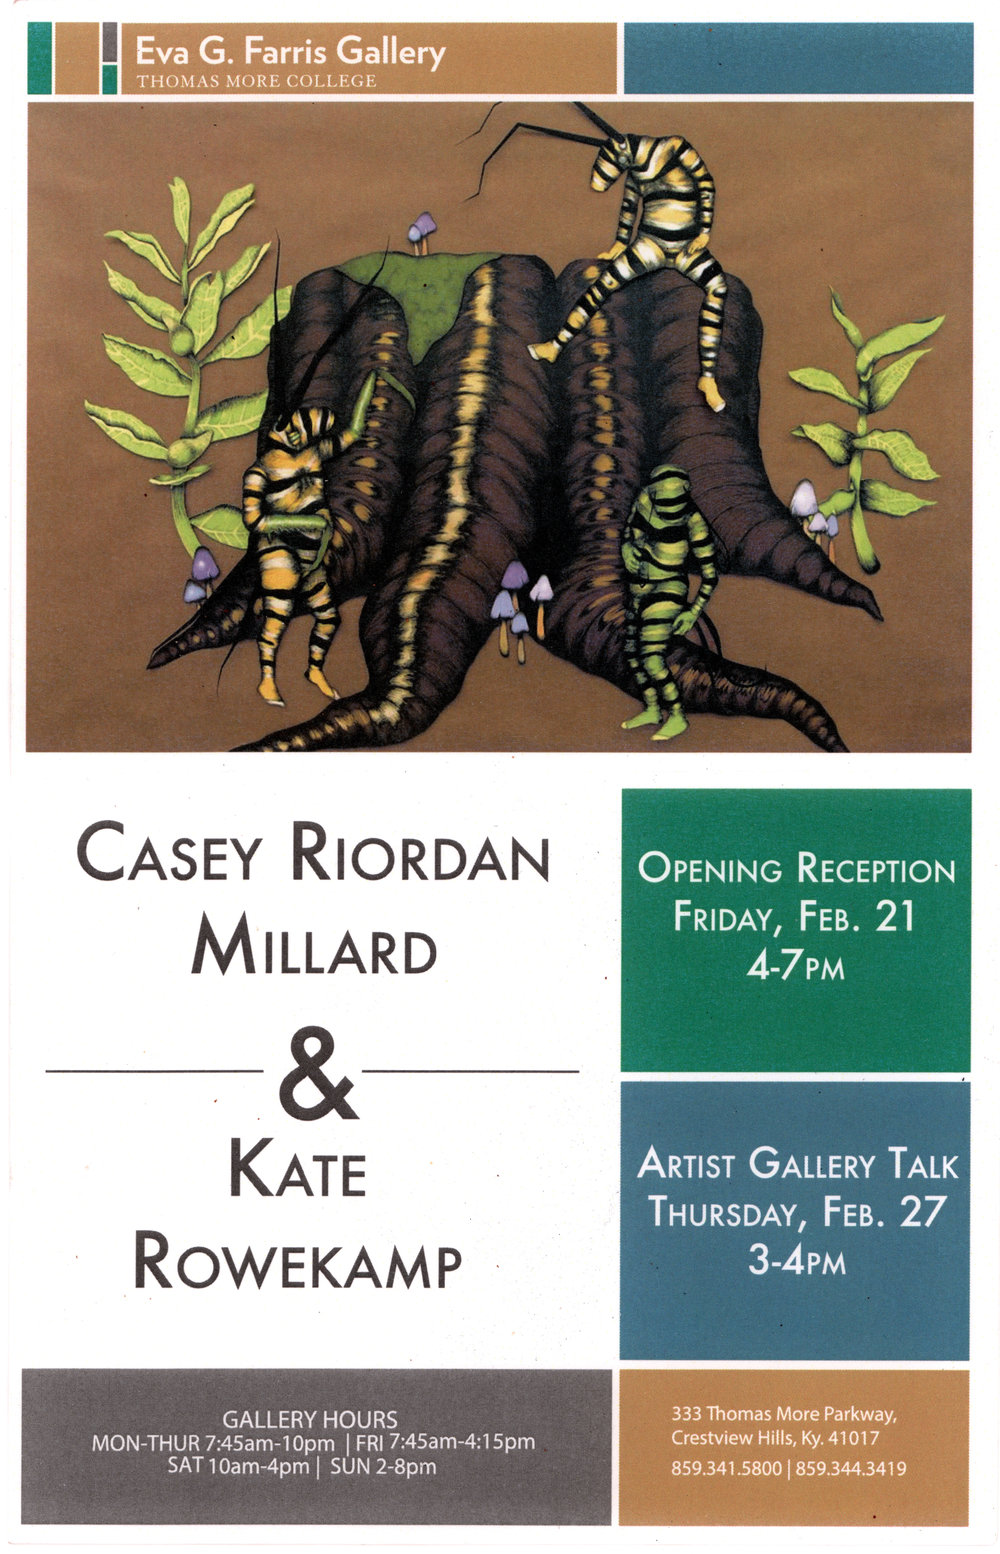 Apprenticeship Show  w/ Master Artist Casey Riordan Millard   February 21, 2014 - March 14, 2014   Artist Talk February 27, 2014   Eva G. Farris Gallery   Crestview Hills, Kentucky